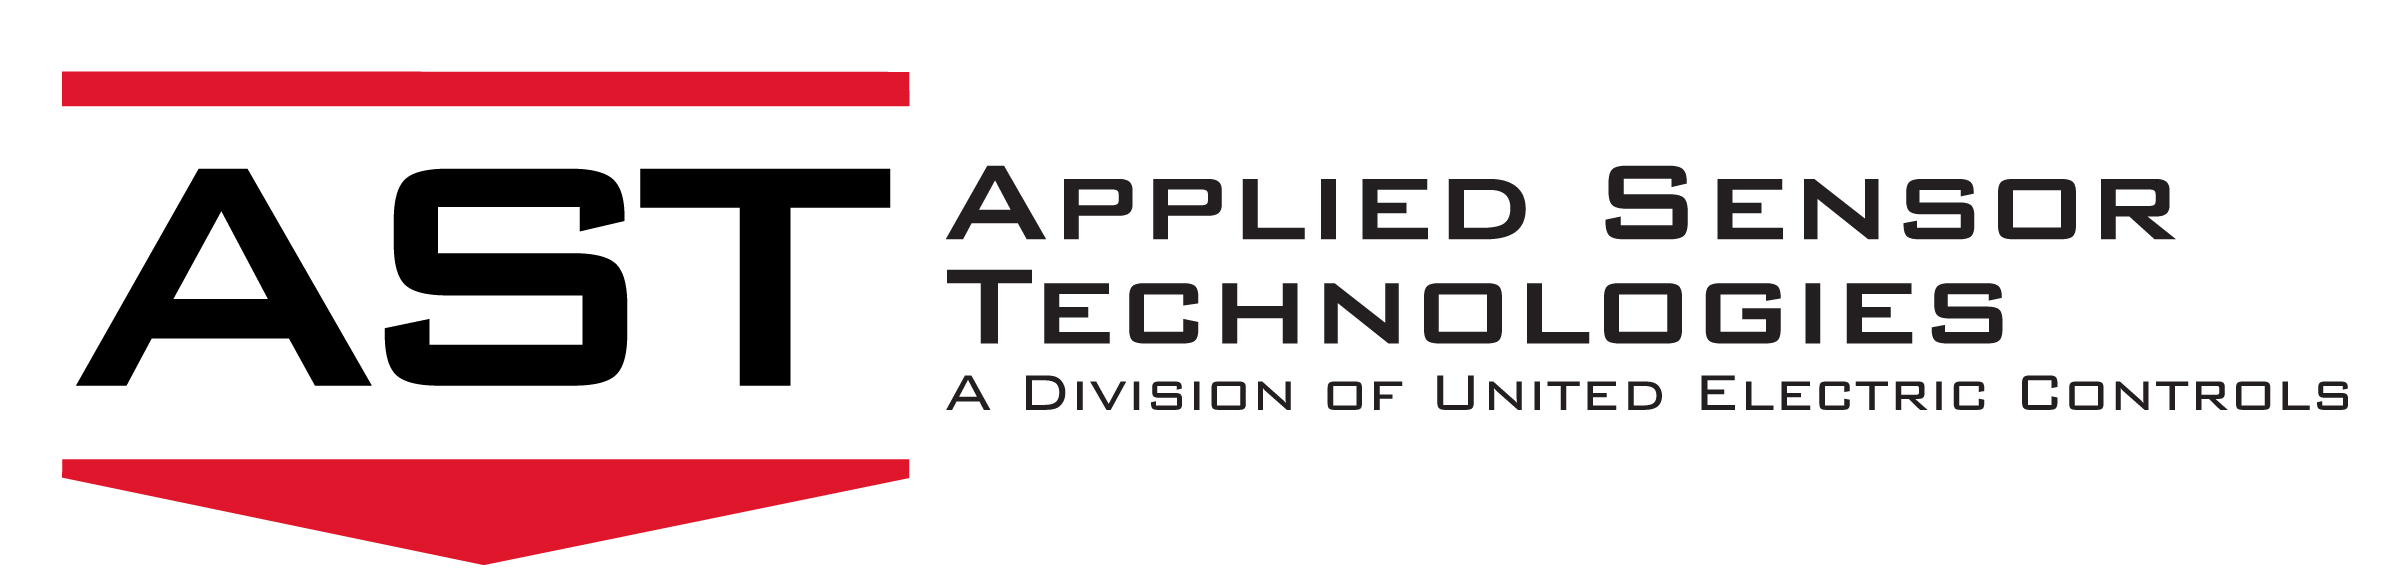 Thermoweels, thermocouples, RTD's, and transmitters from Applied Sensor Technologies